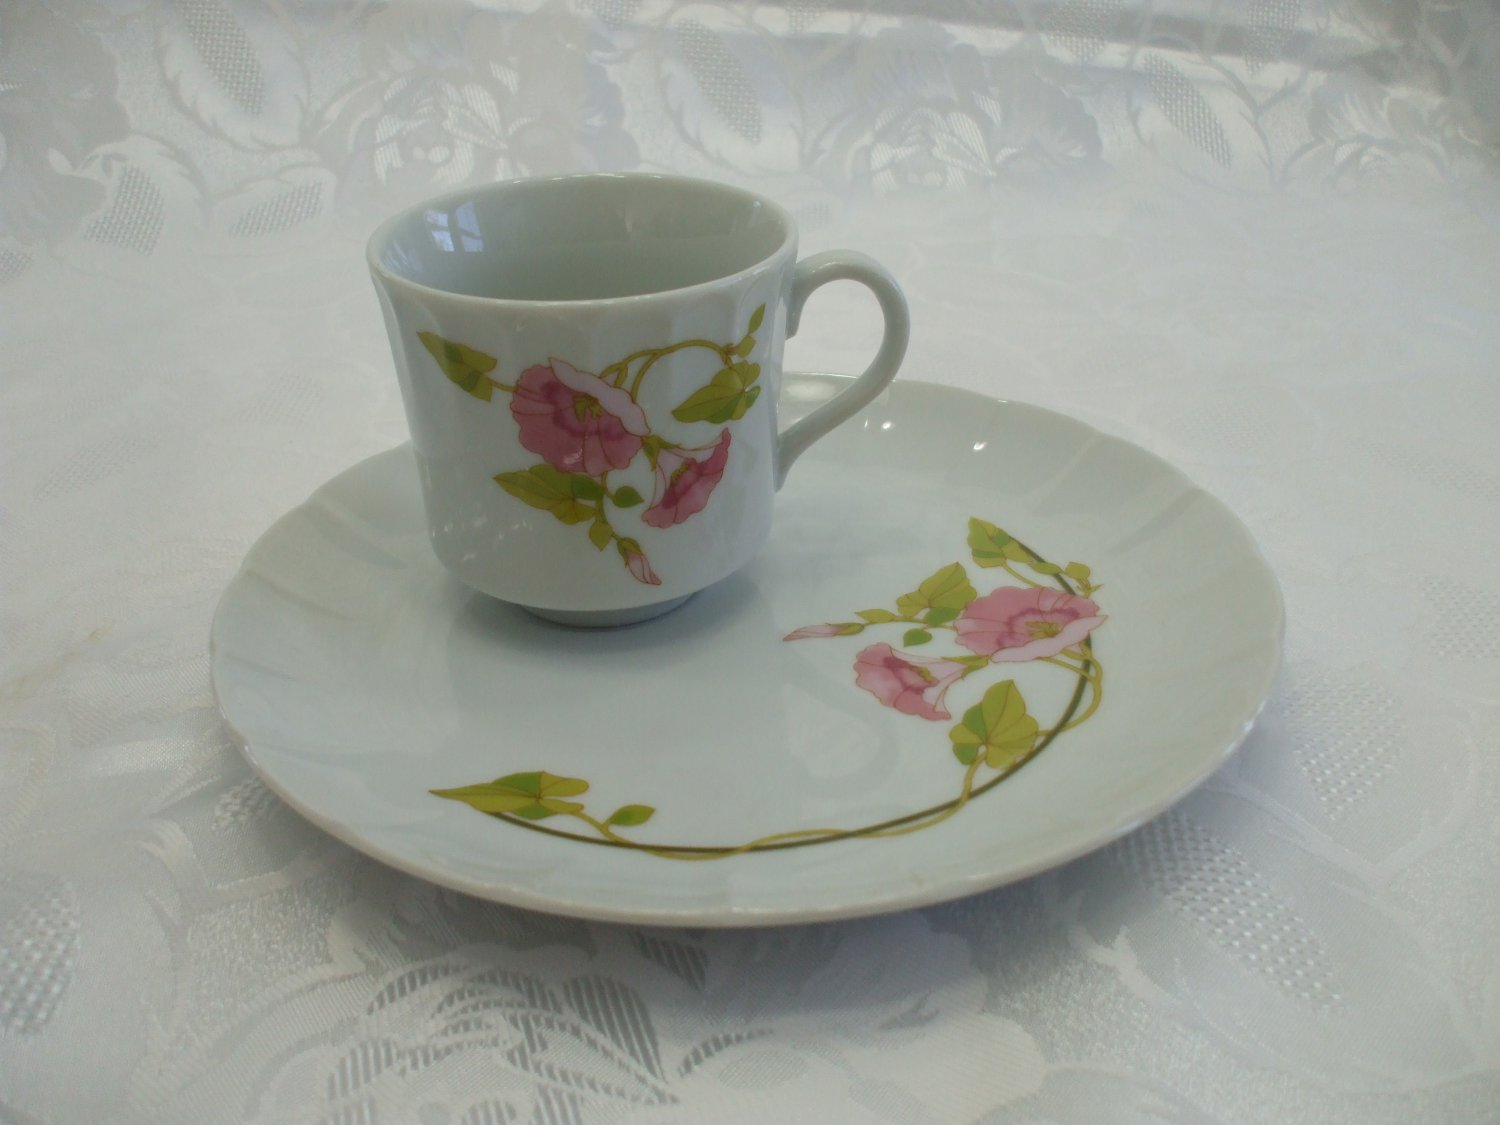 Vintage Toscany Collection Morning Glory 2 Pc Tea Cup And Snack Plate